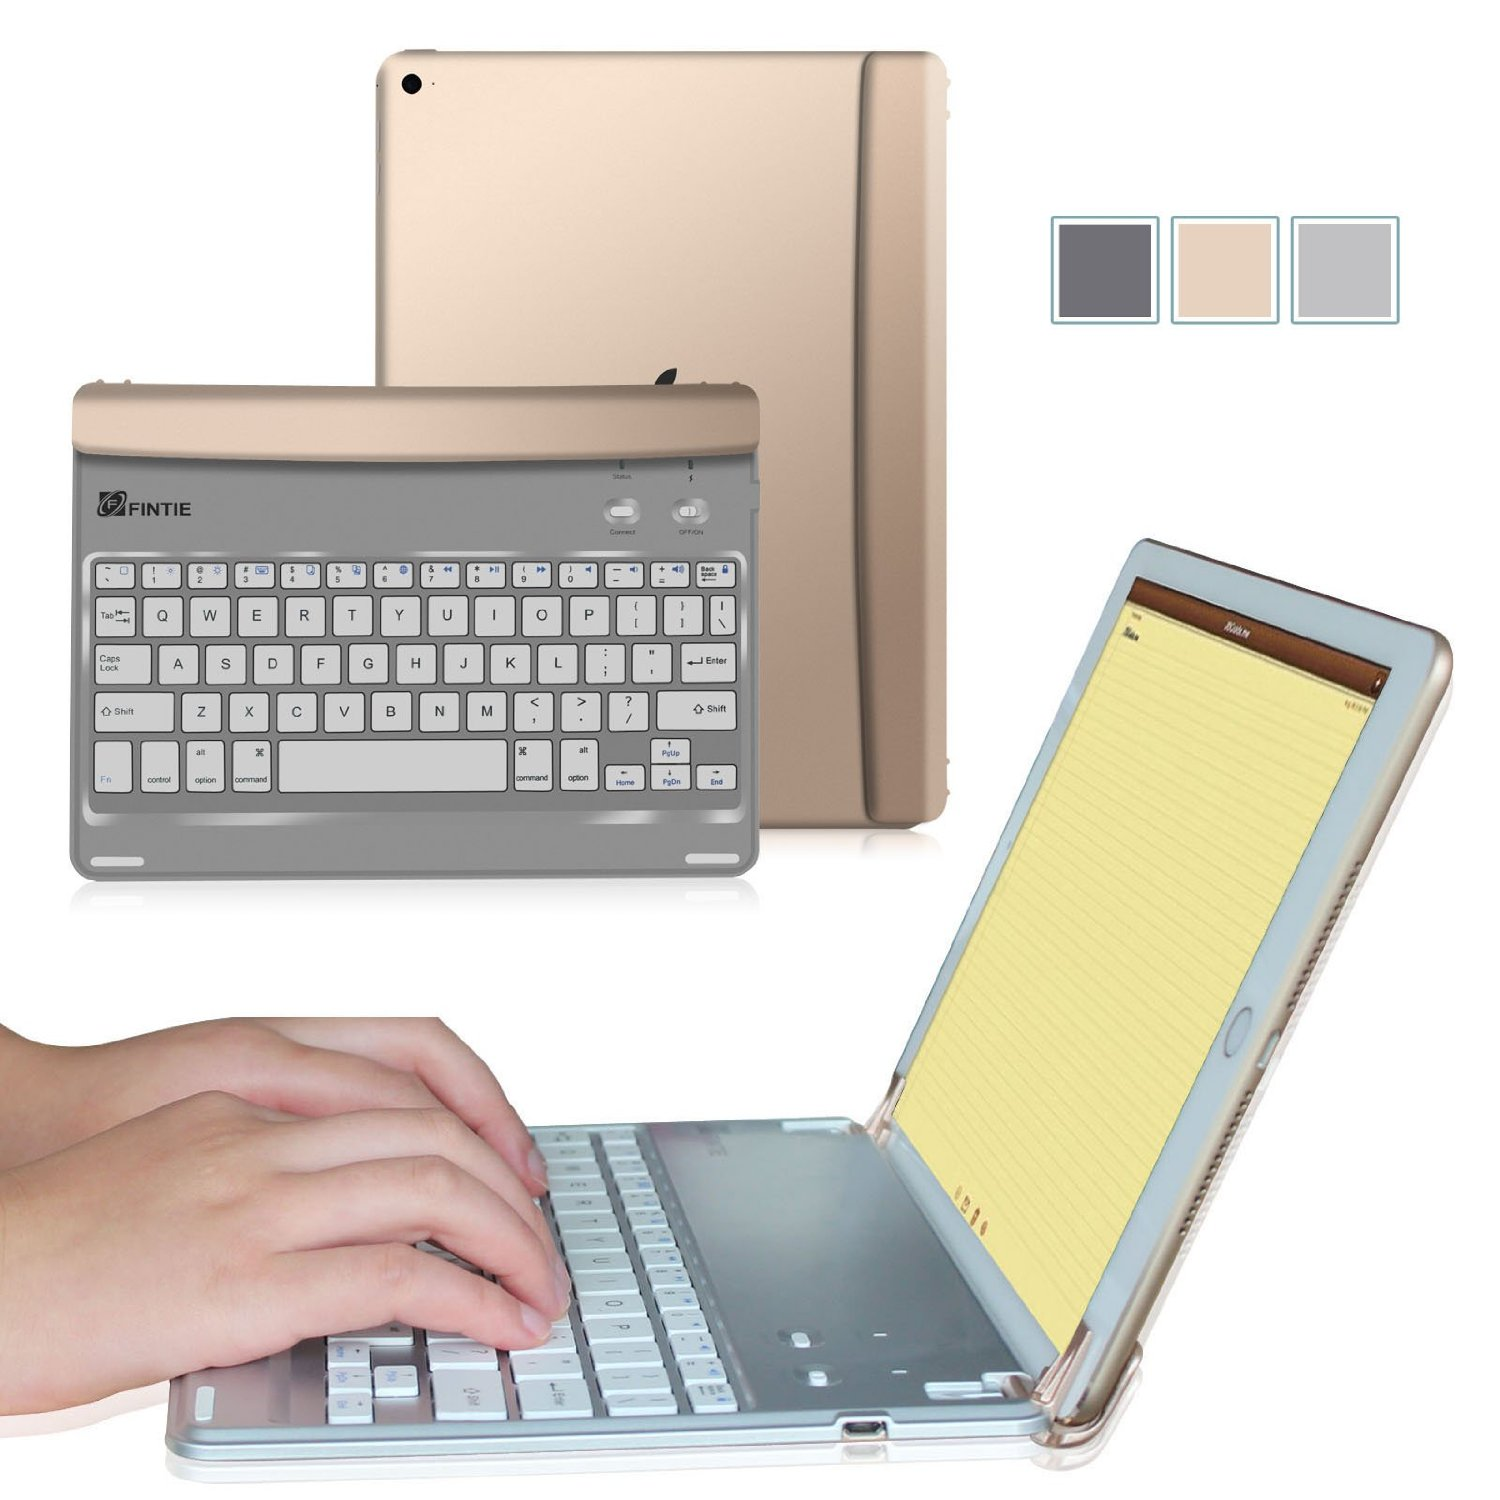 Fintie Apple iPad mini 1/2/3 Cover - Blade Z1 Slim Multi-Angle Wireless Bluetooth Keyboard Auto Wake/Sleep, Gold